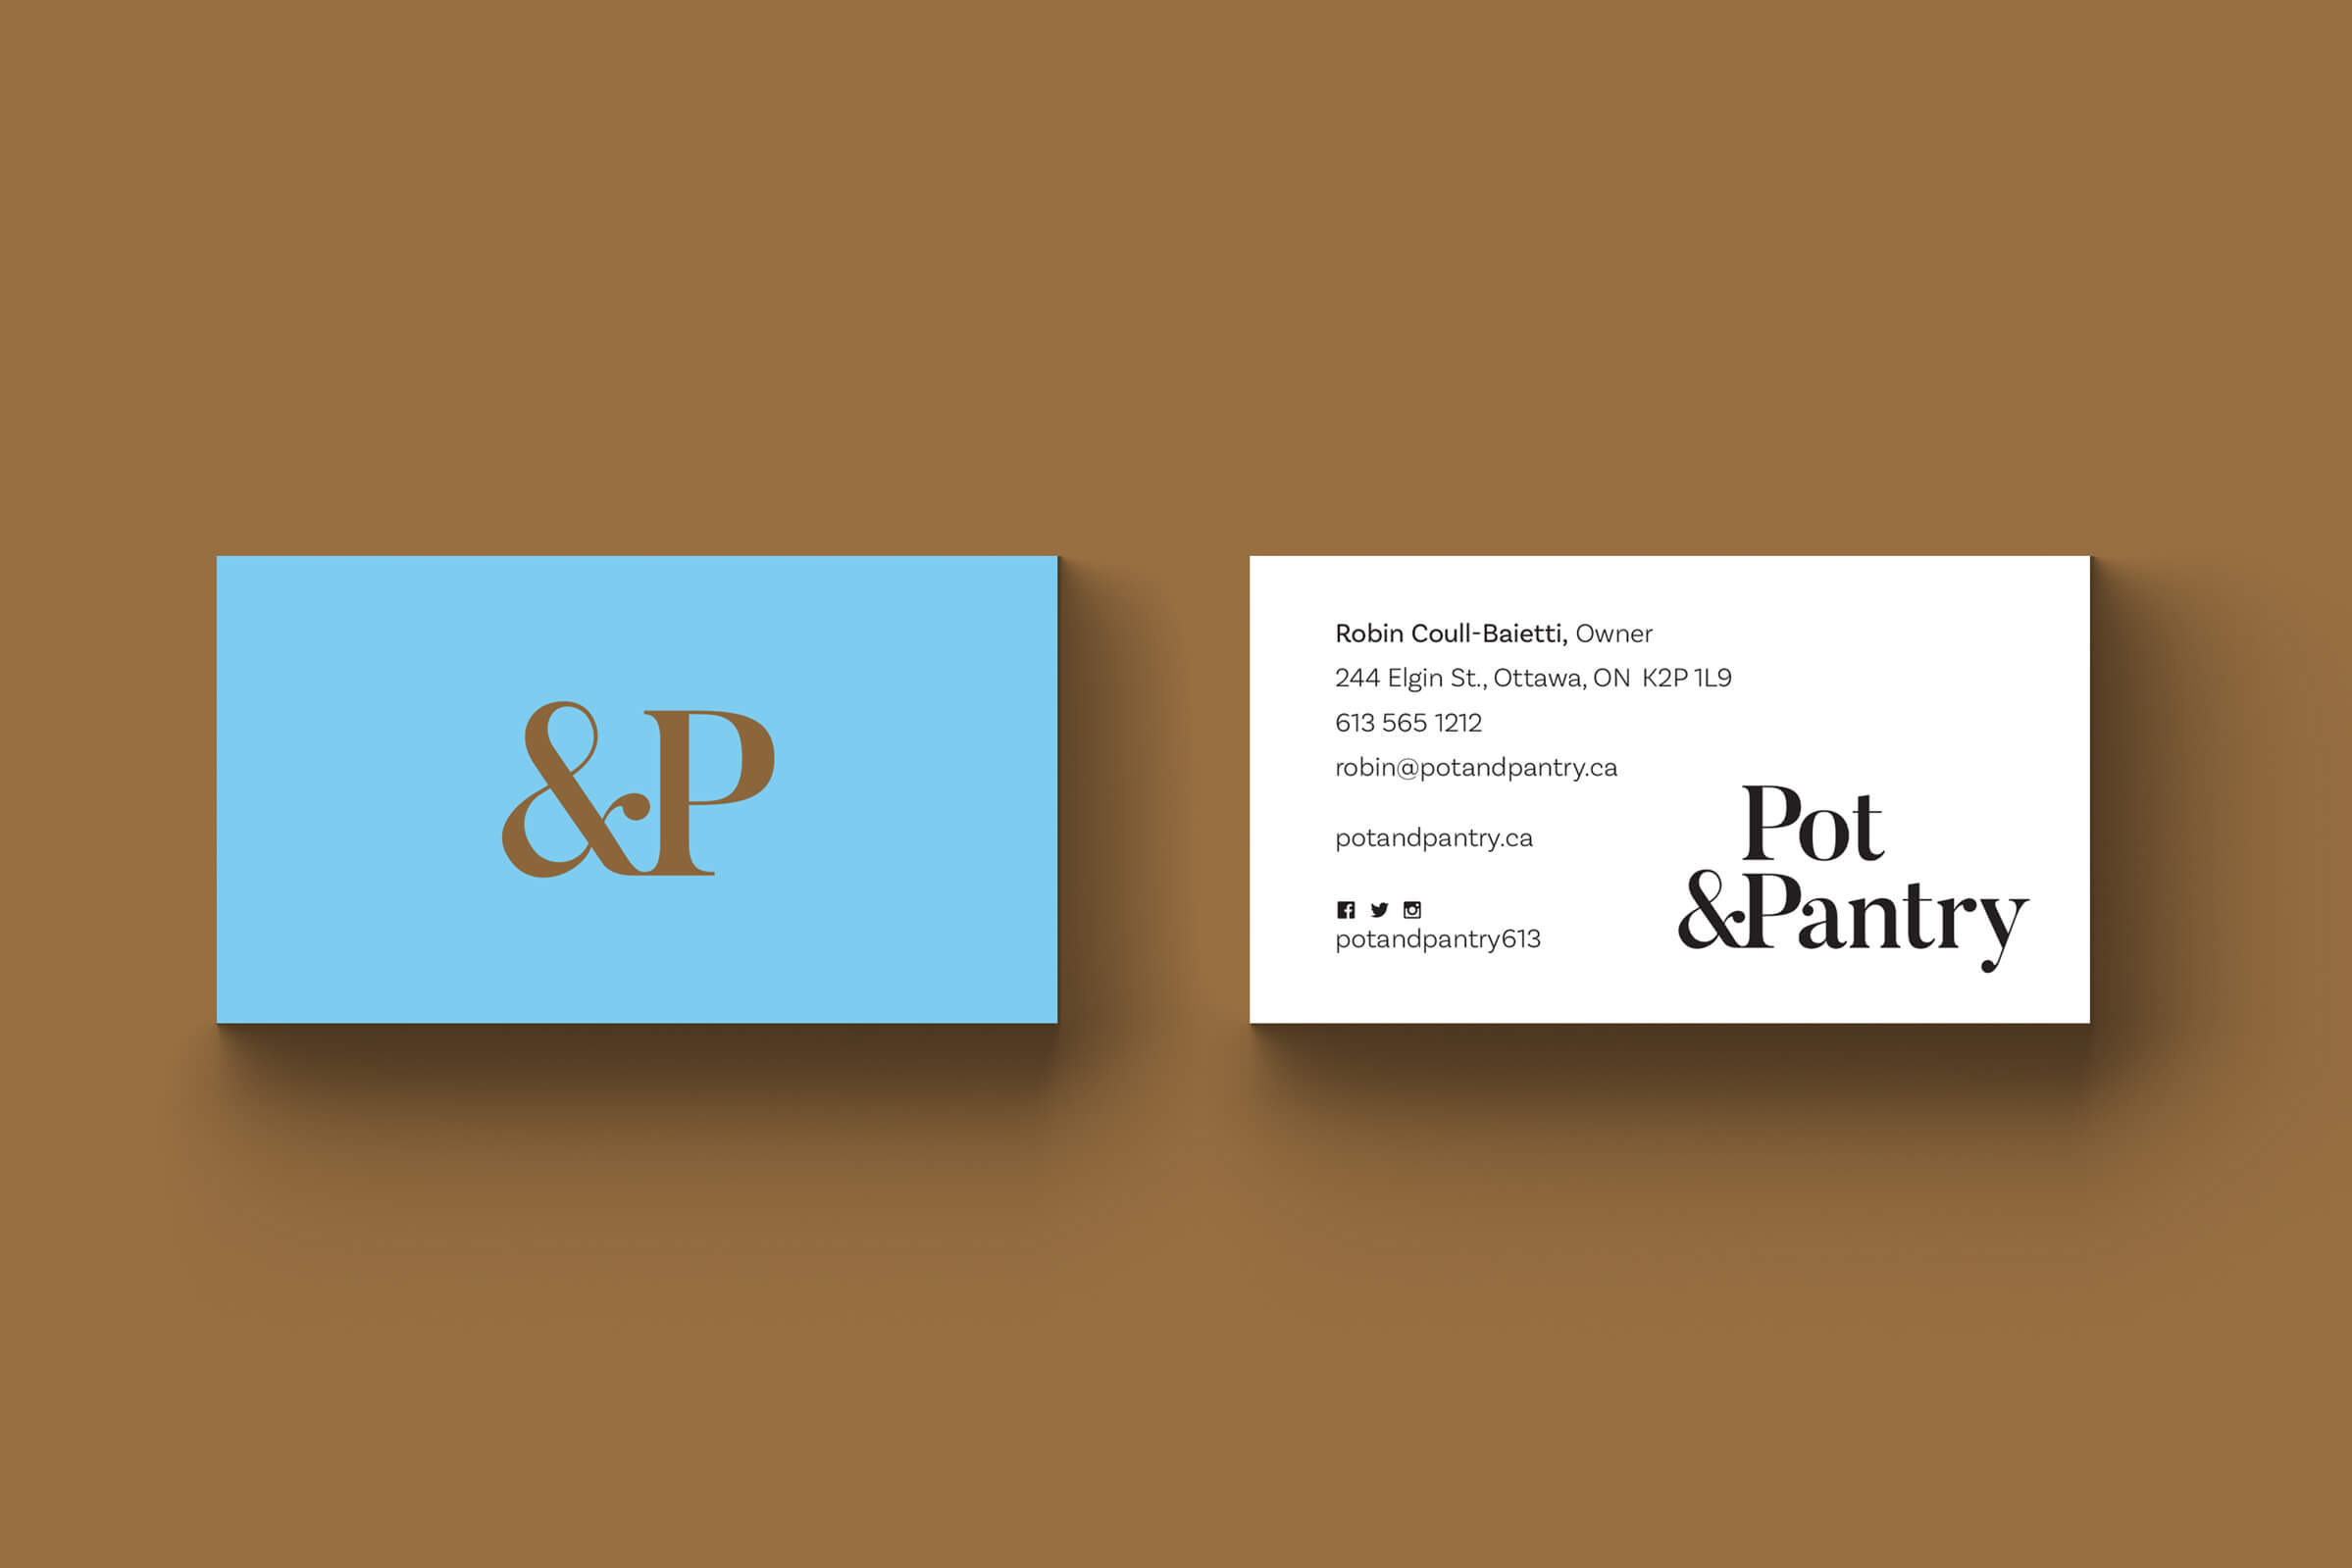 Business Cards for Pot & Pantry, an Ottawa kitchenware store by Graphic Design Studio idApostle